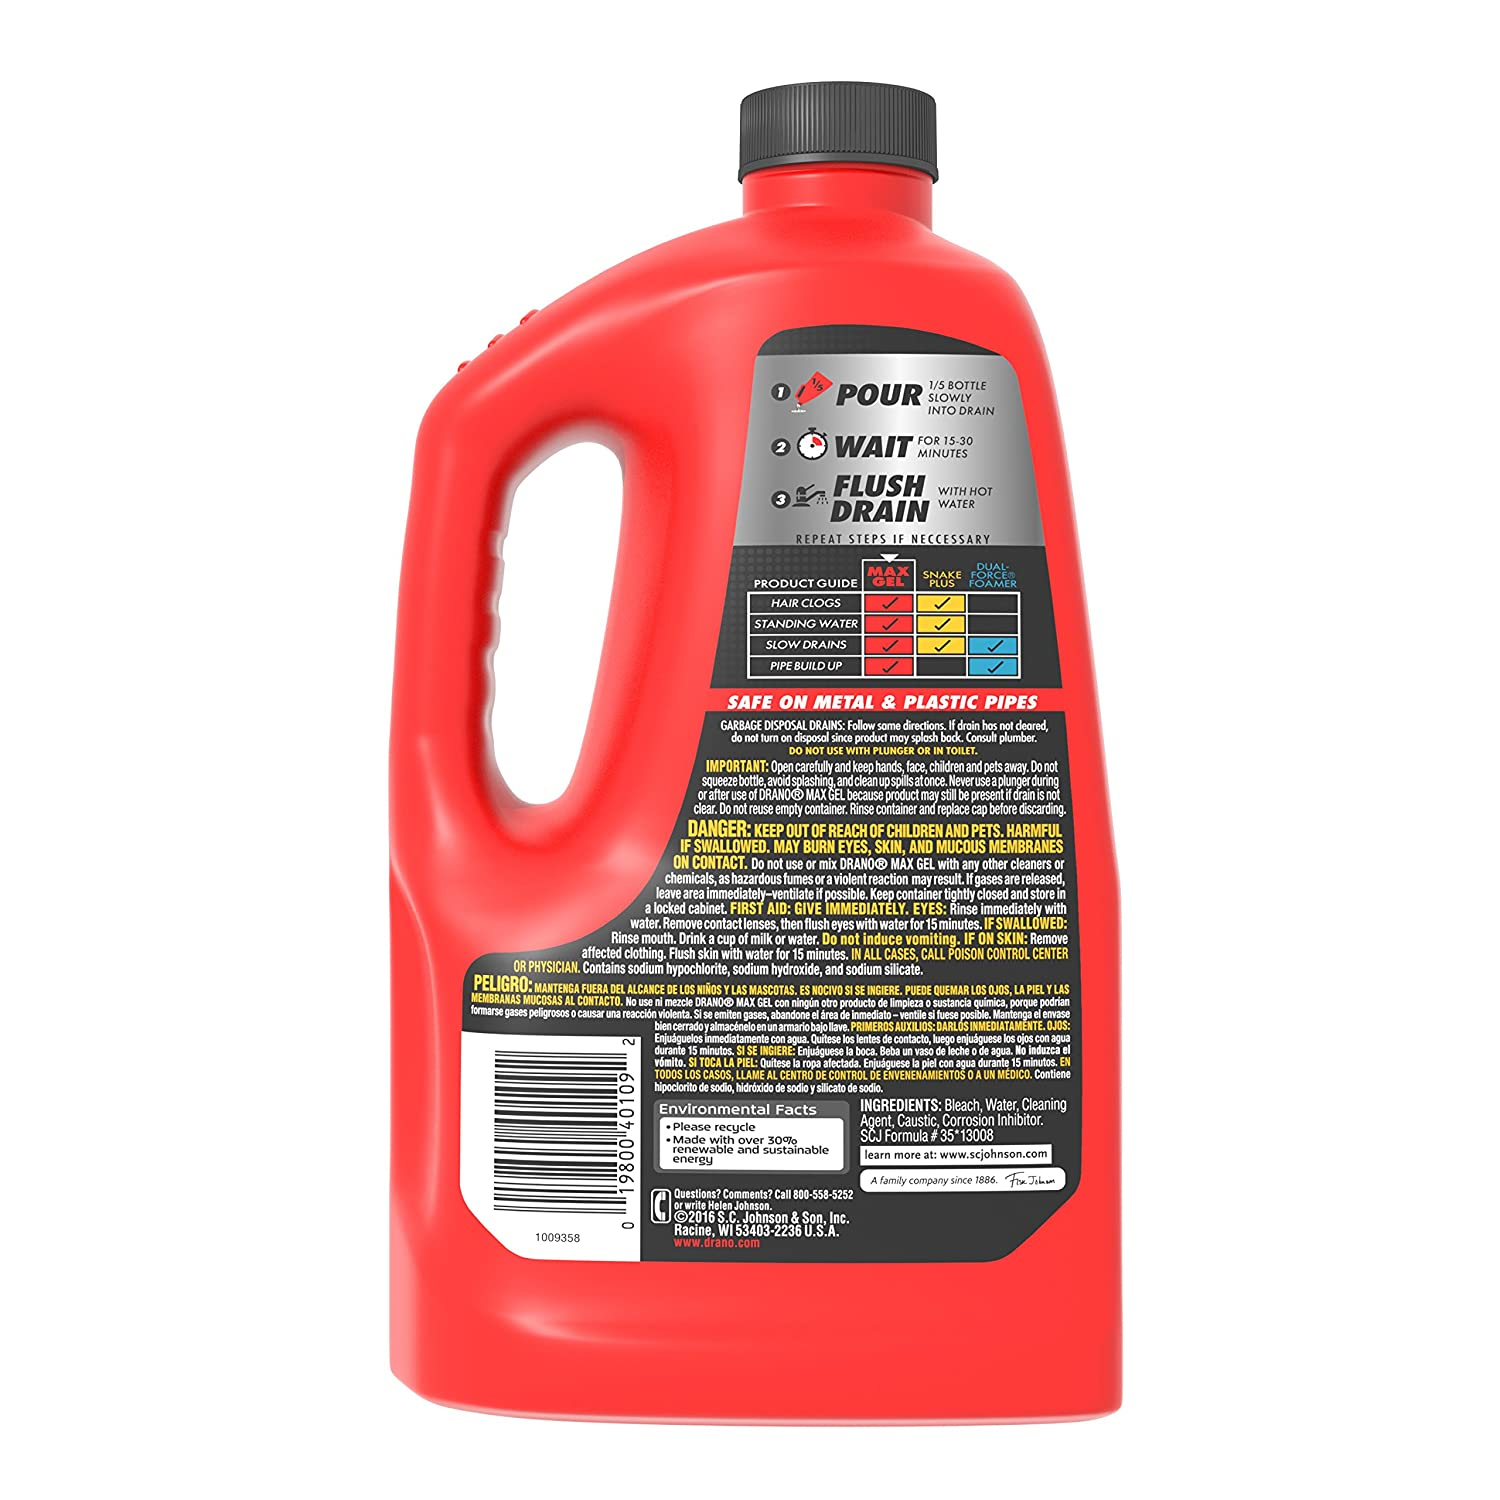 my drano can with thevote pictures for of design kitchen ideas unclog clogged how to i chemicals dimensions without snake unique bathroom bathtub drain sink home regard x steps